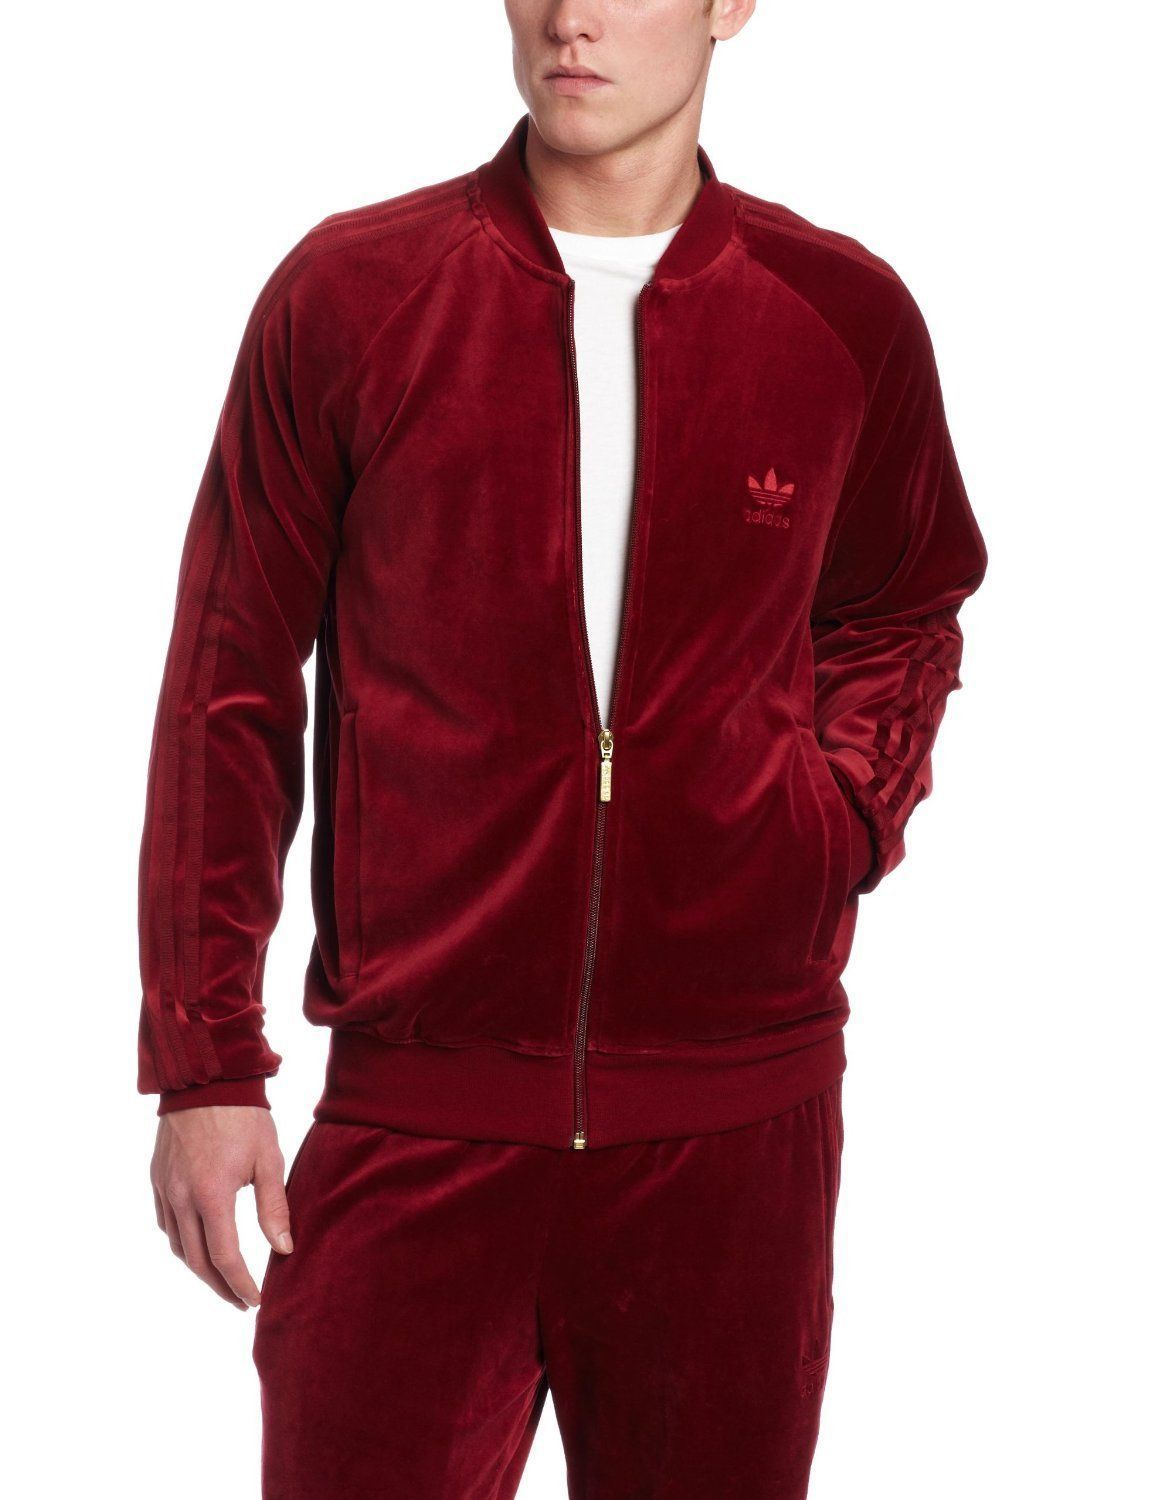 ADIDAS ORIGINALS SUPERSTAR MENS VELOUR RED TRACK SUIT SZ 2XL JACKET PANTS